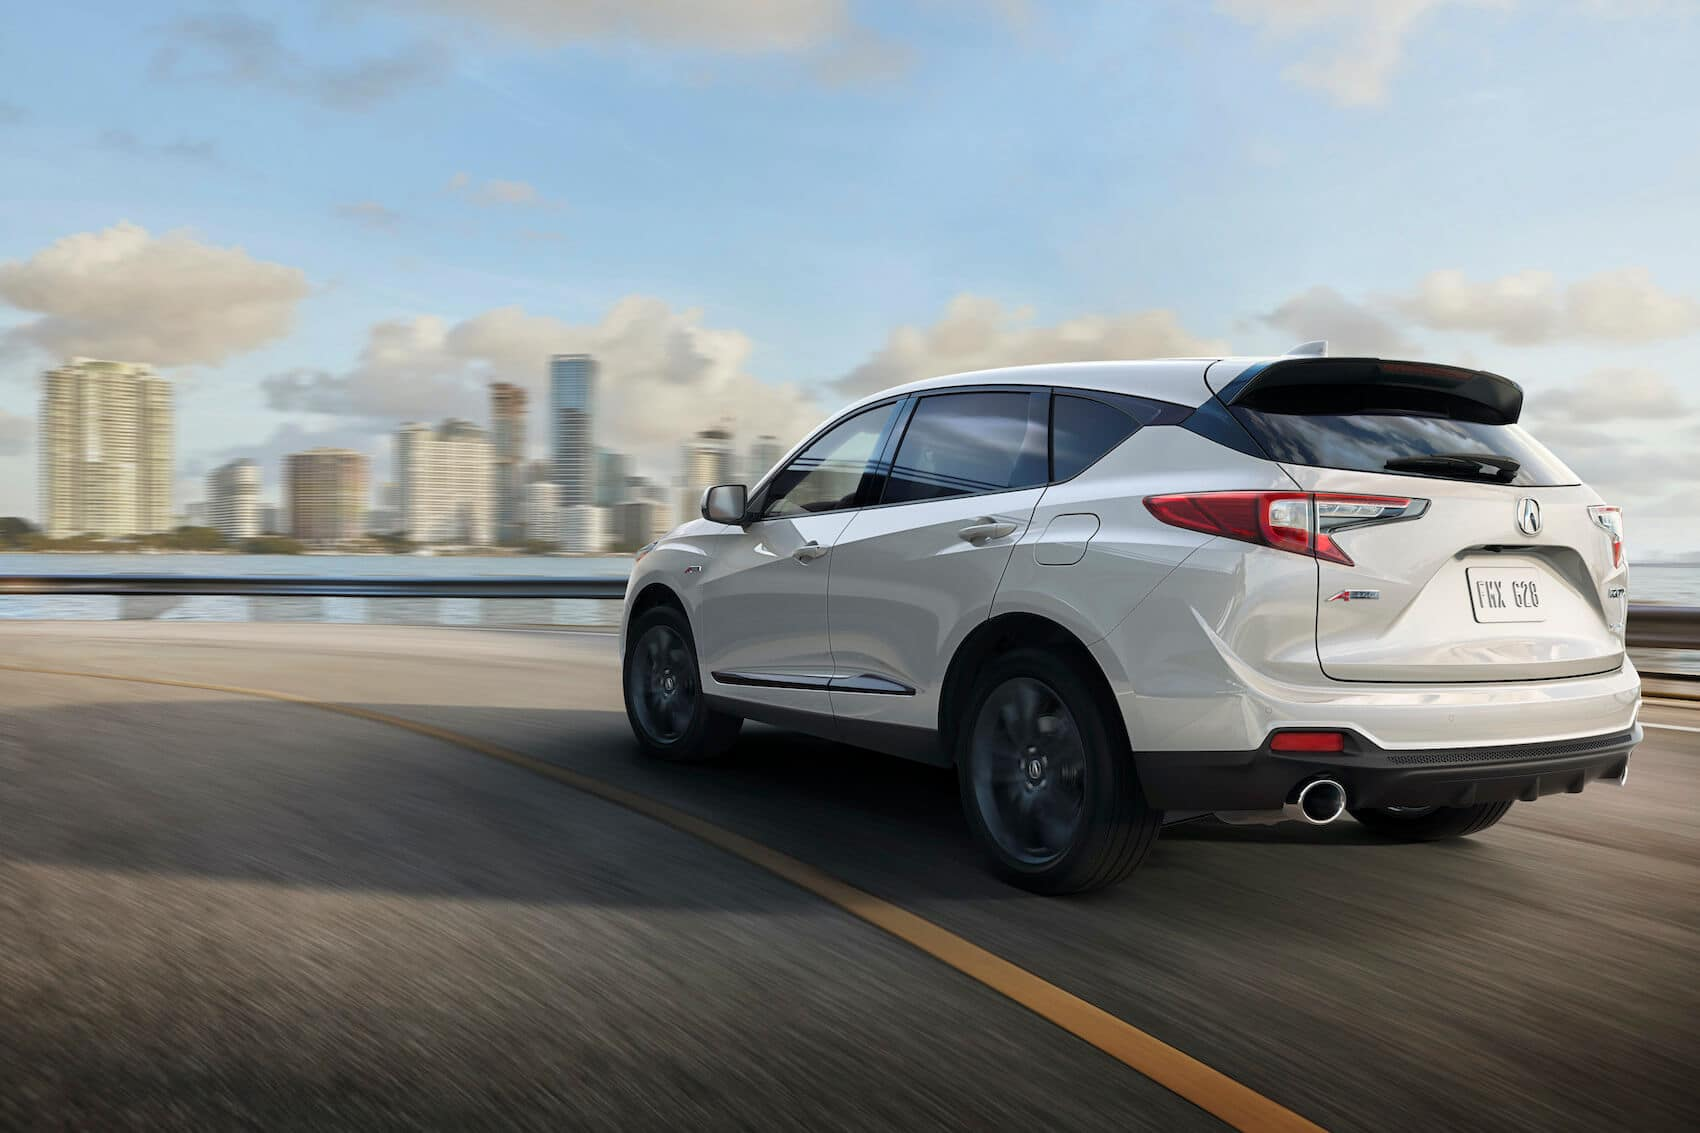 Schedule to Have Your Acura RDX Serviced at Our Dealership